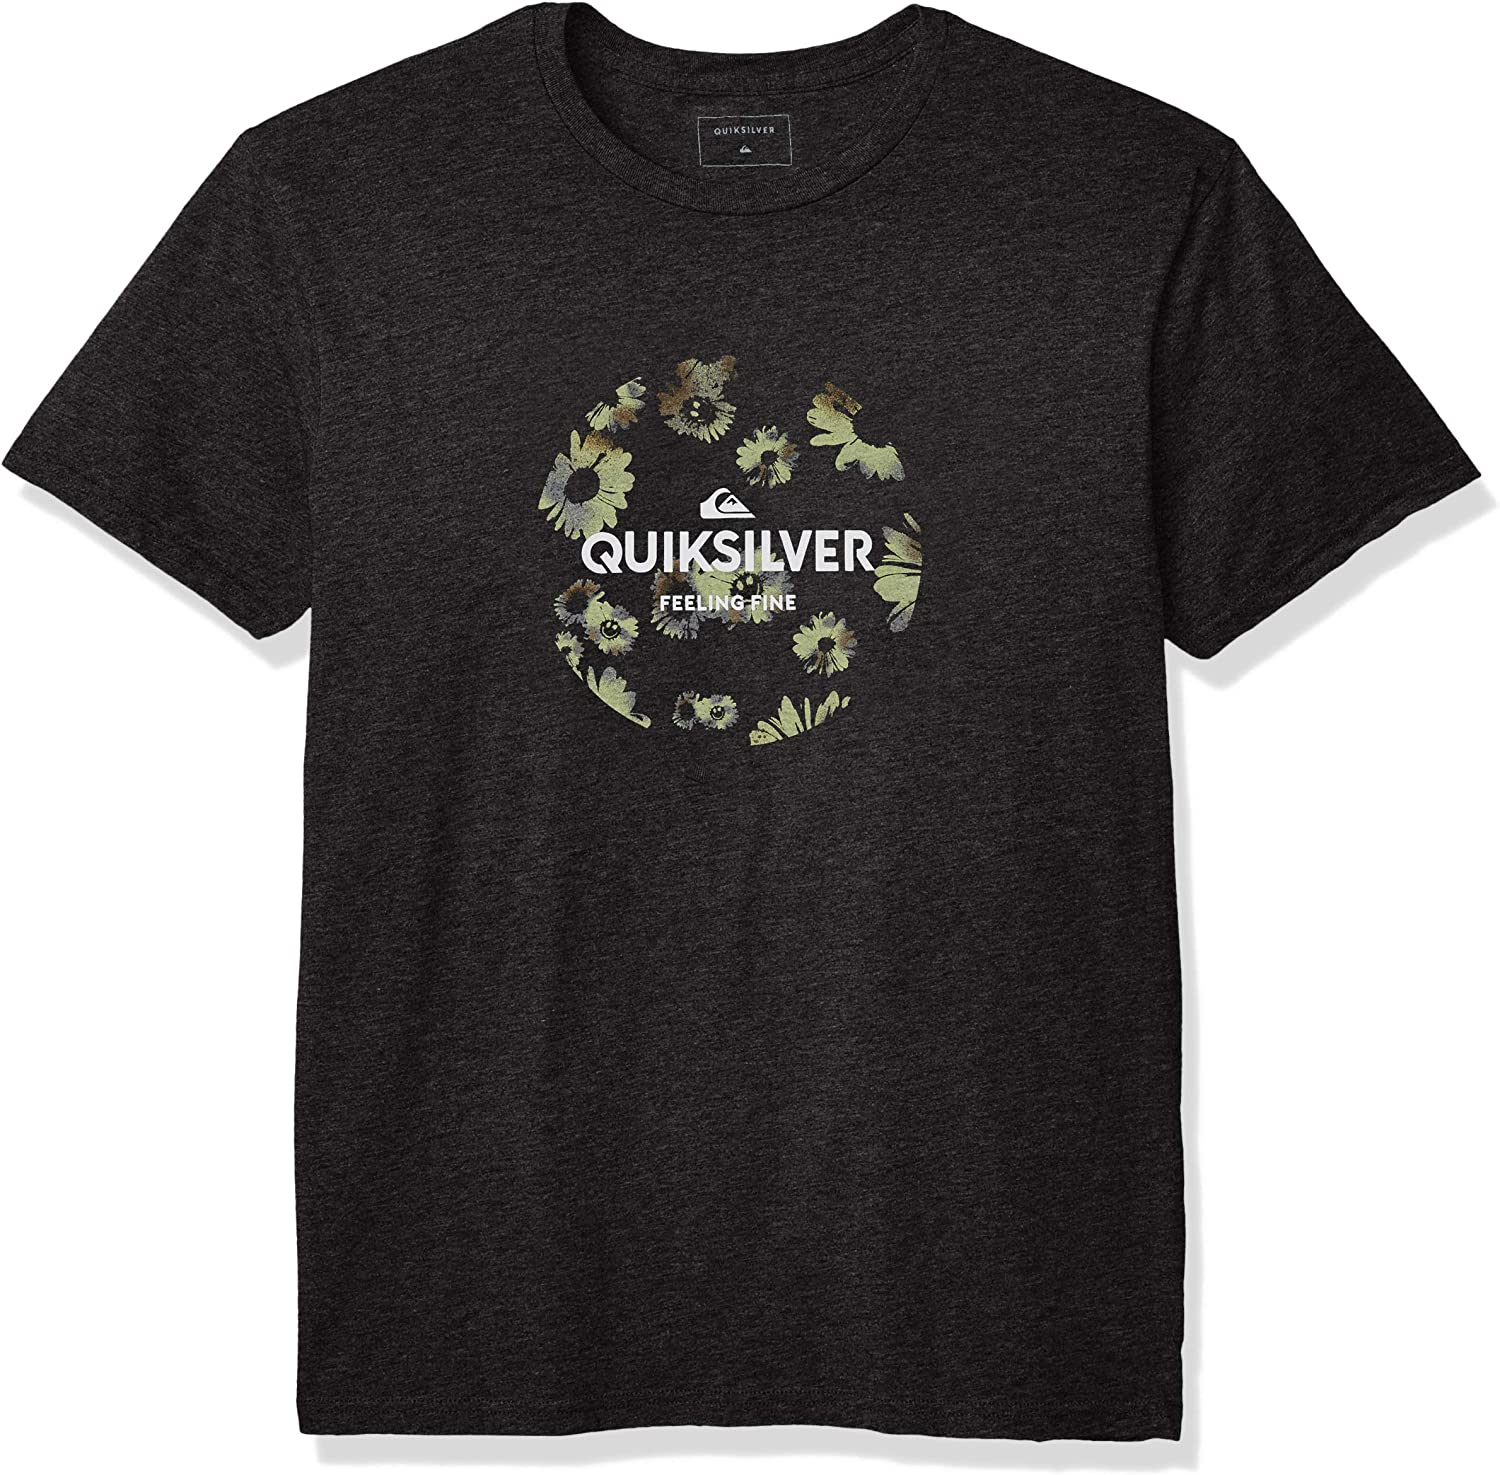 Quiksilver Mens Summers End Tee